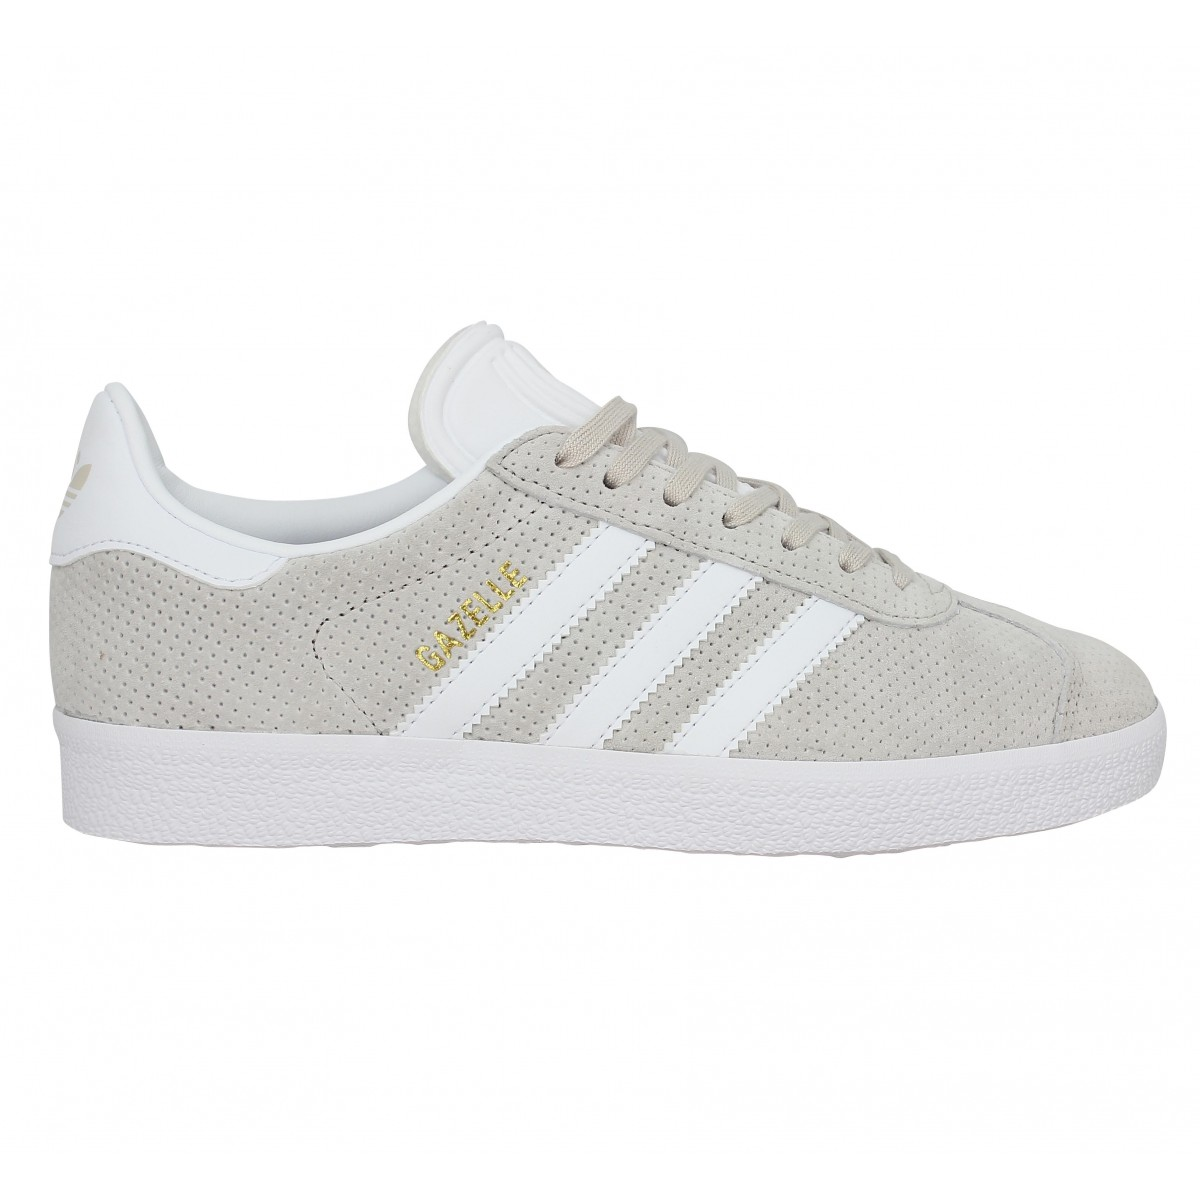 Chaussures Adidas Element grises fille geEZPs8